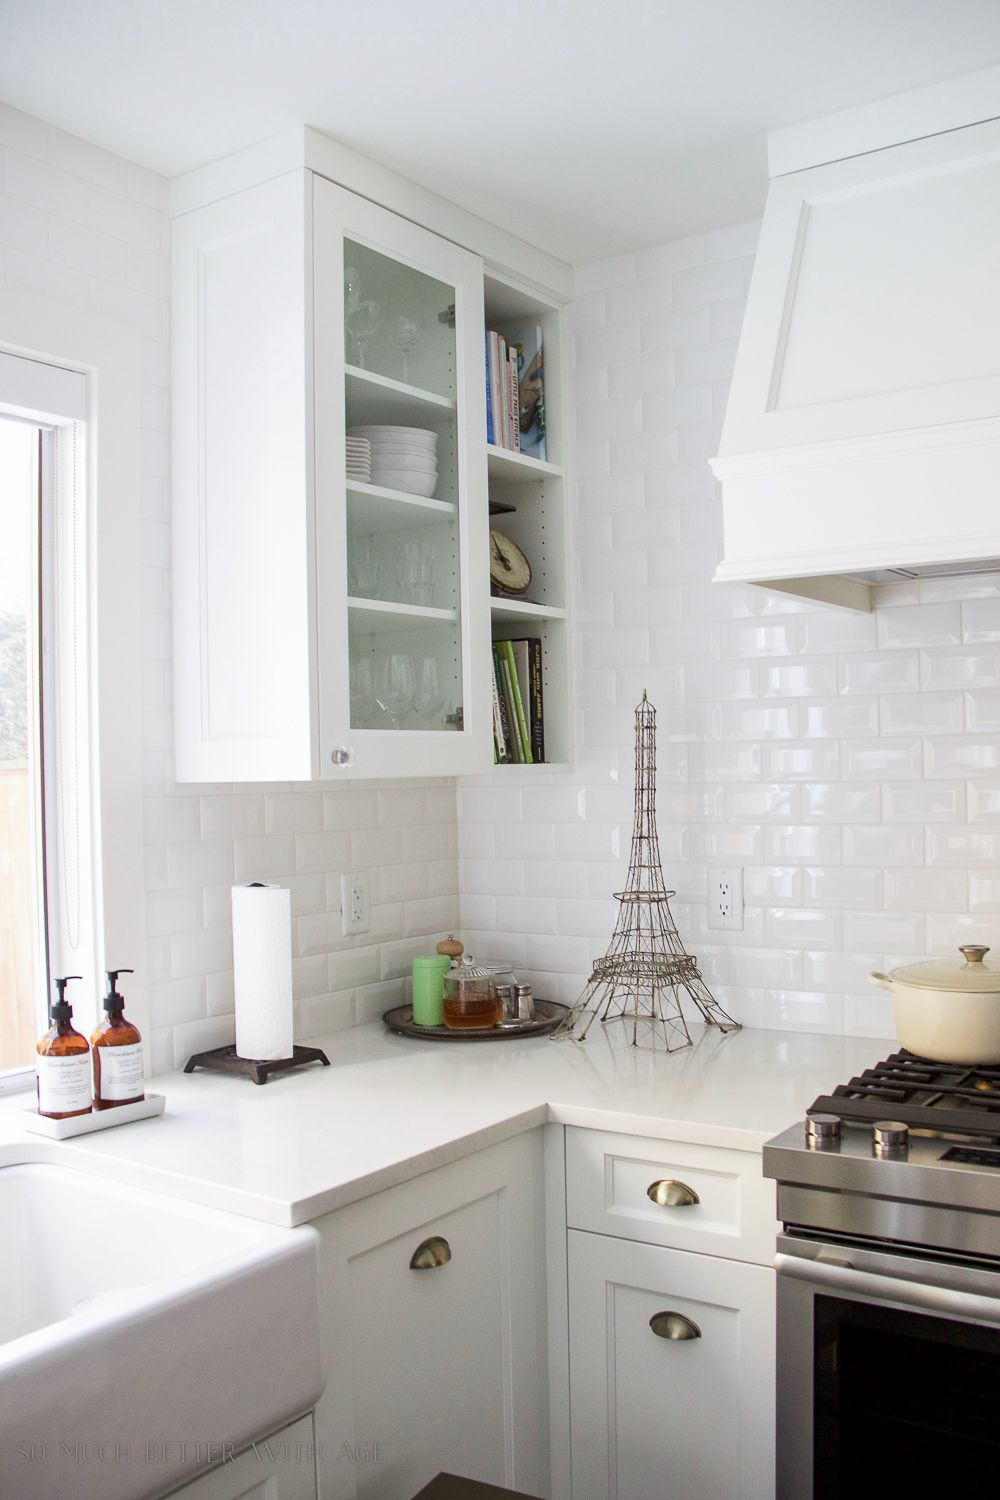 My Big, Beautiful Kitchen Renovation - Before and After Photos ...